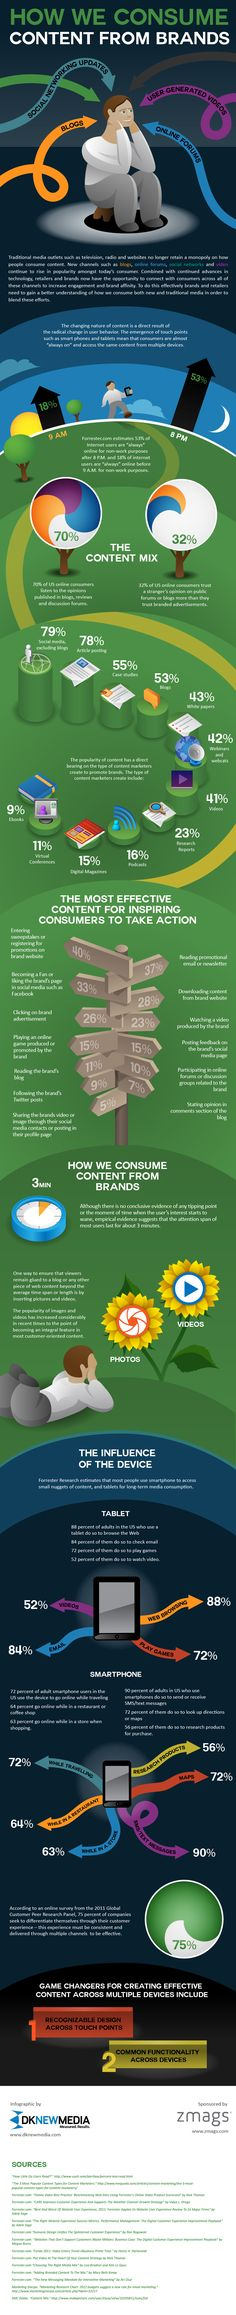 How Do We Consume Content From Brands? [INFOGRAPHIC]